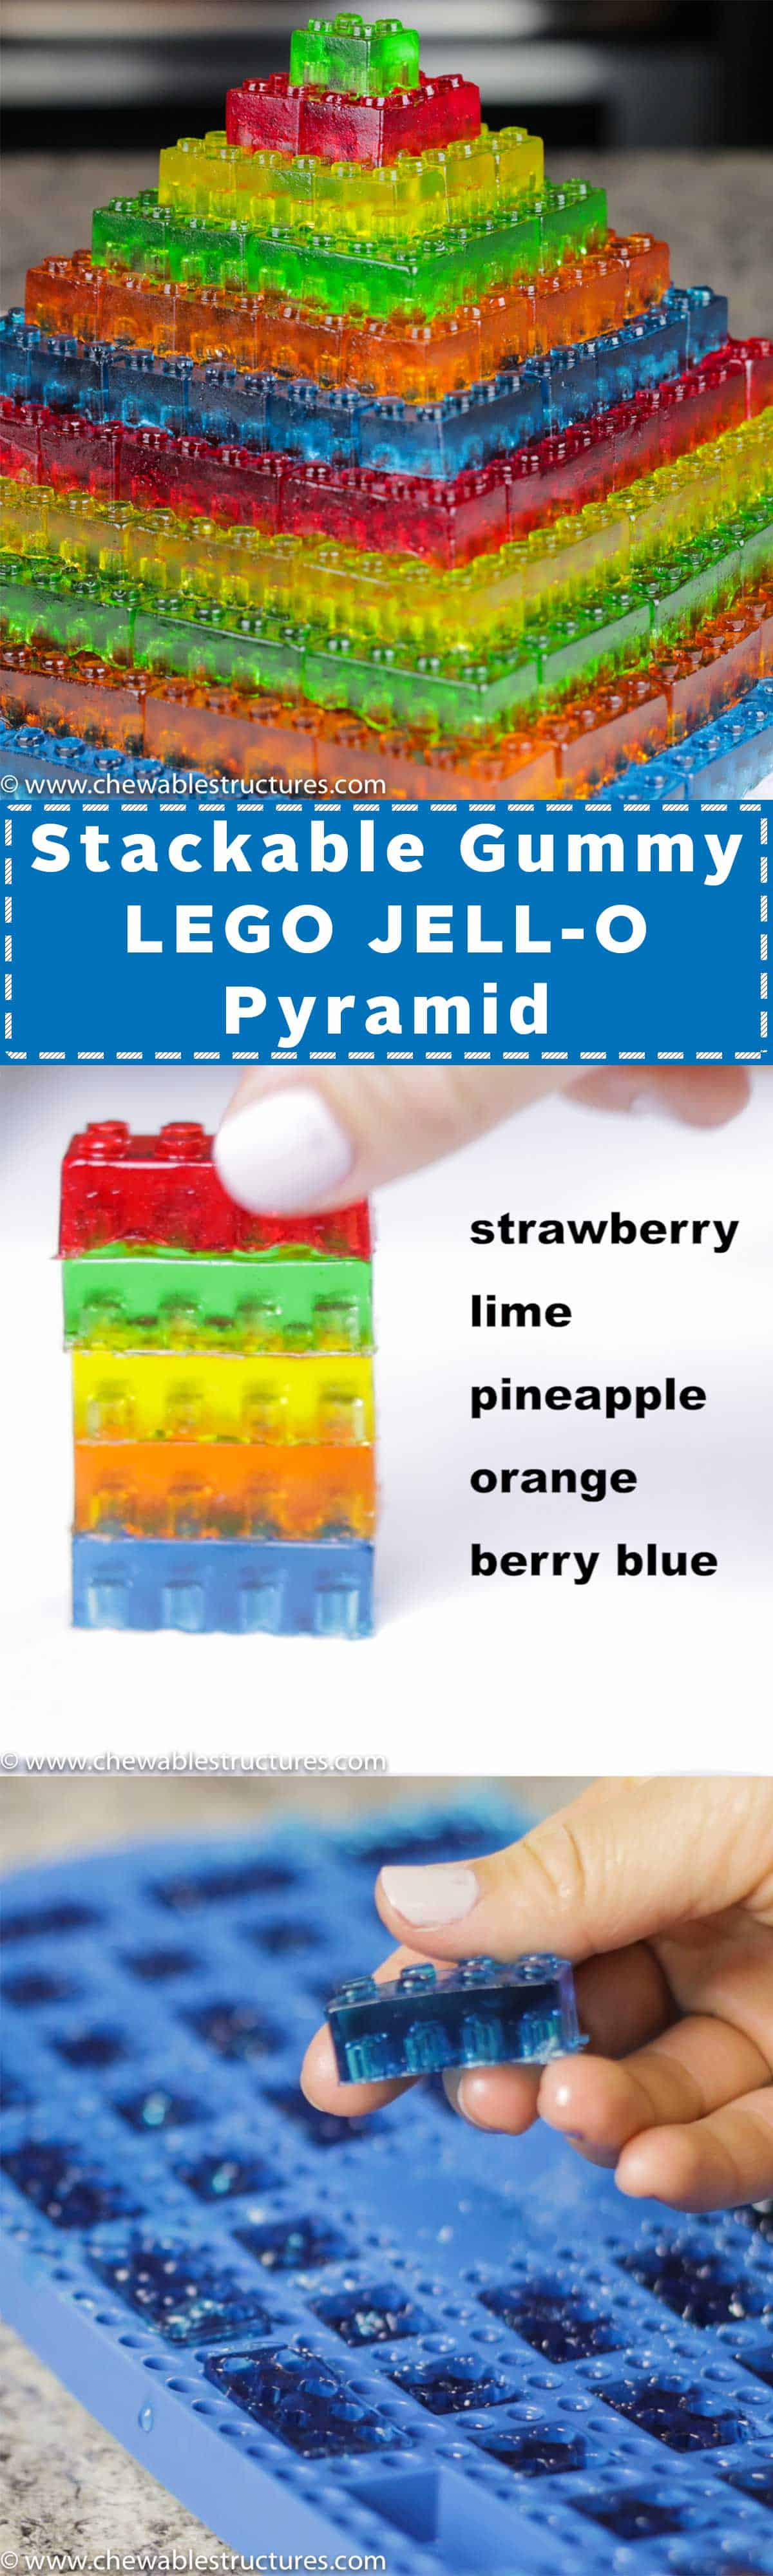 Learn how to make gummies in this fun video. You can also make JELLO gummy candy as edible gifts. Follow this easy LEGO JELLO recipe.